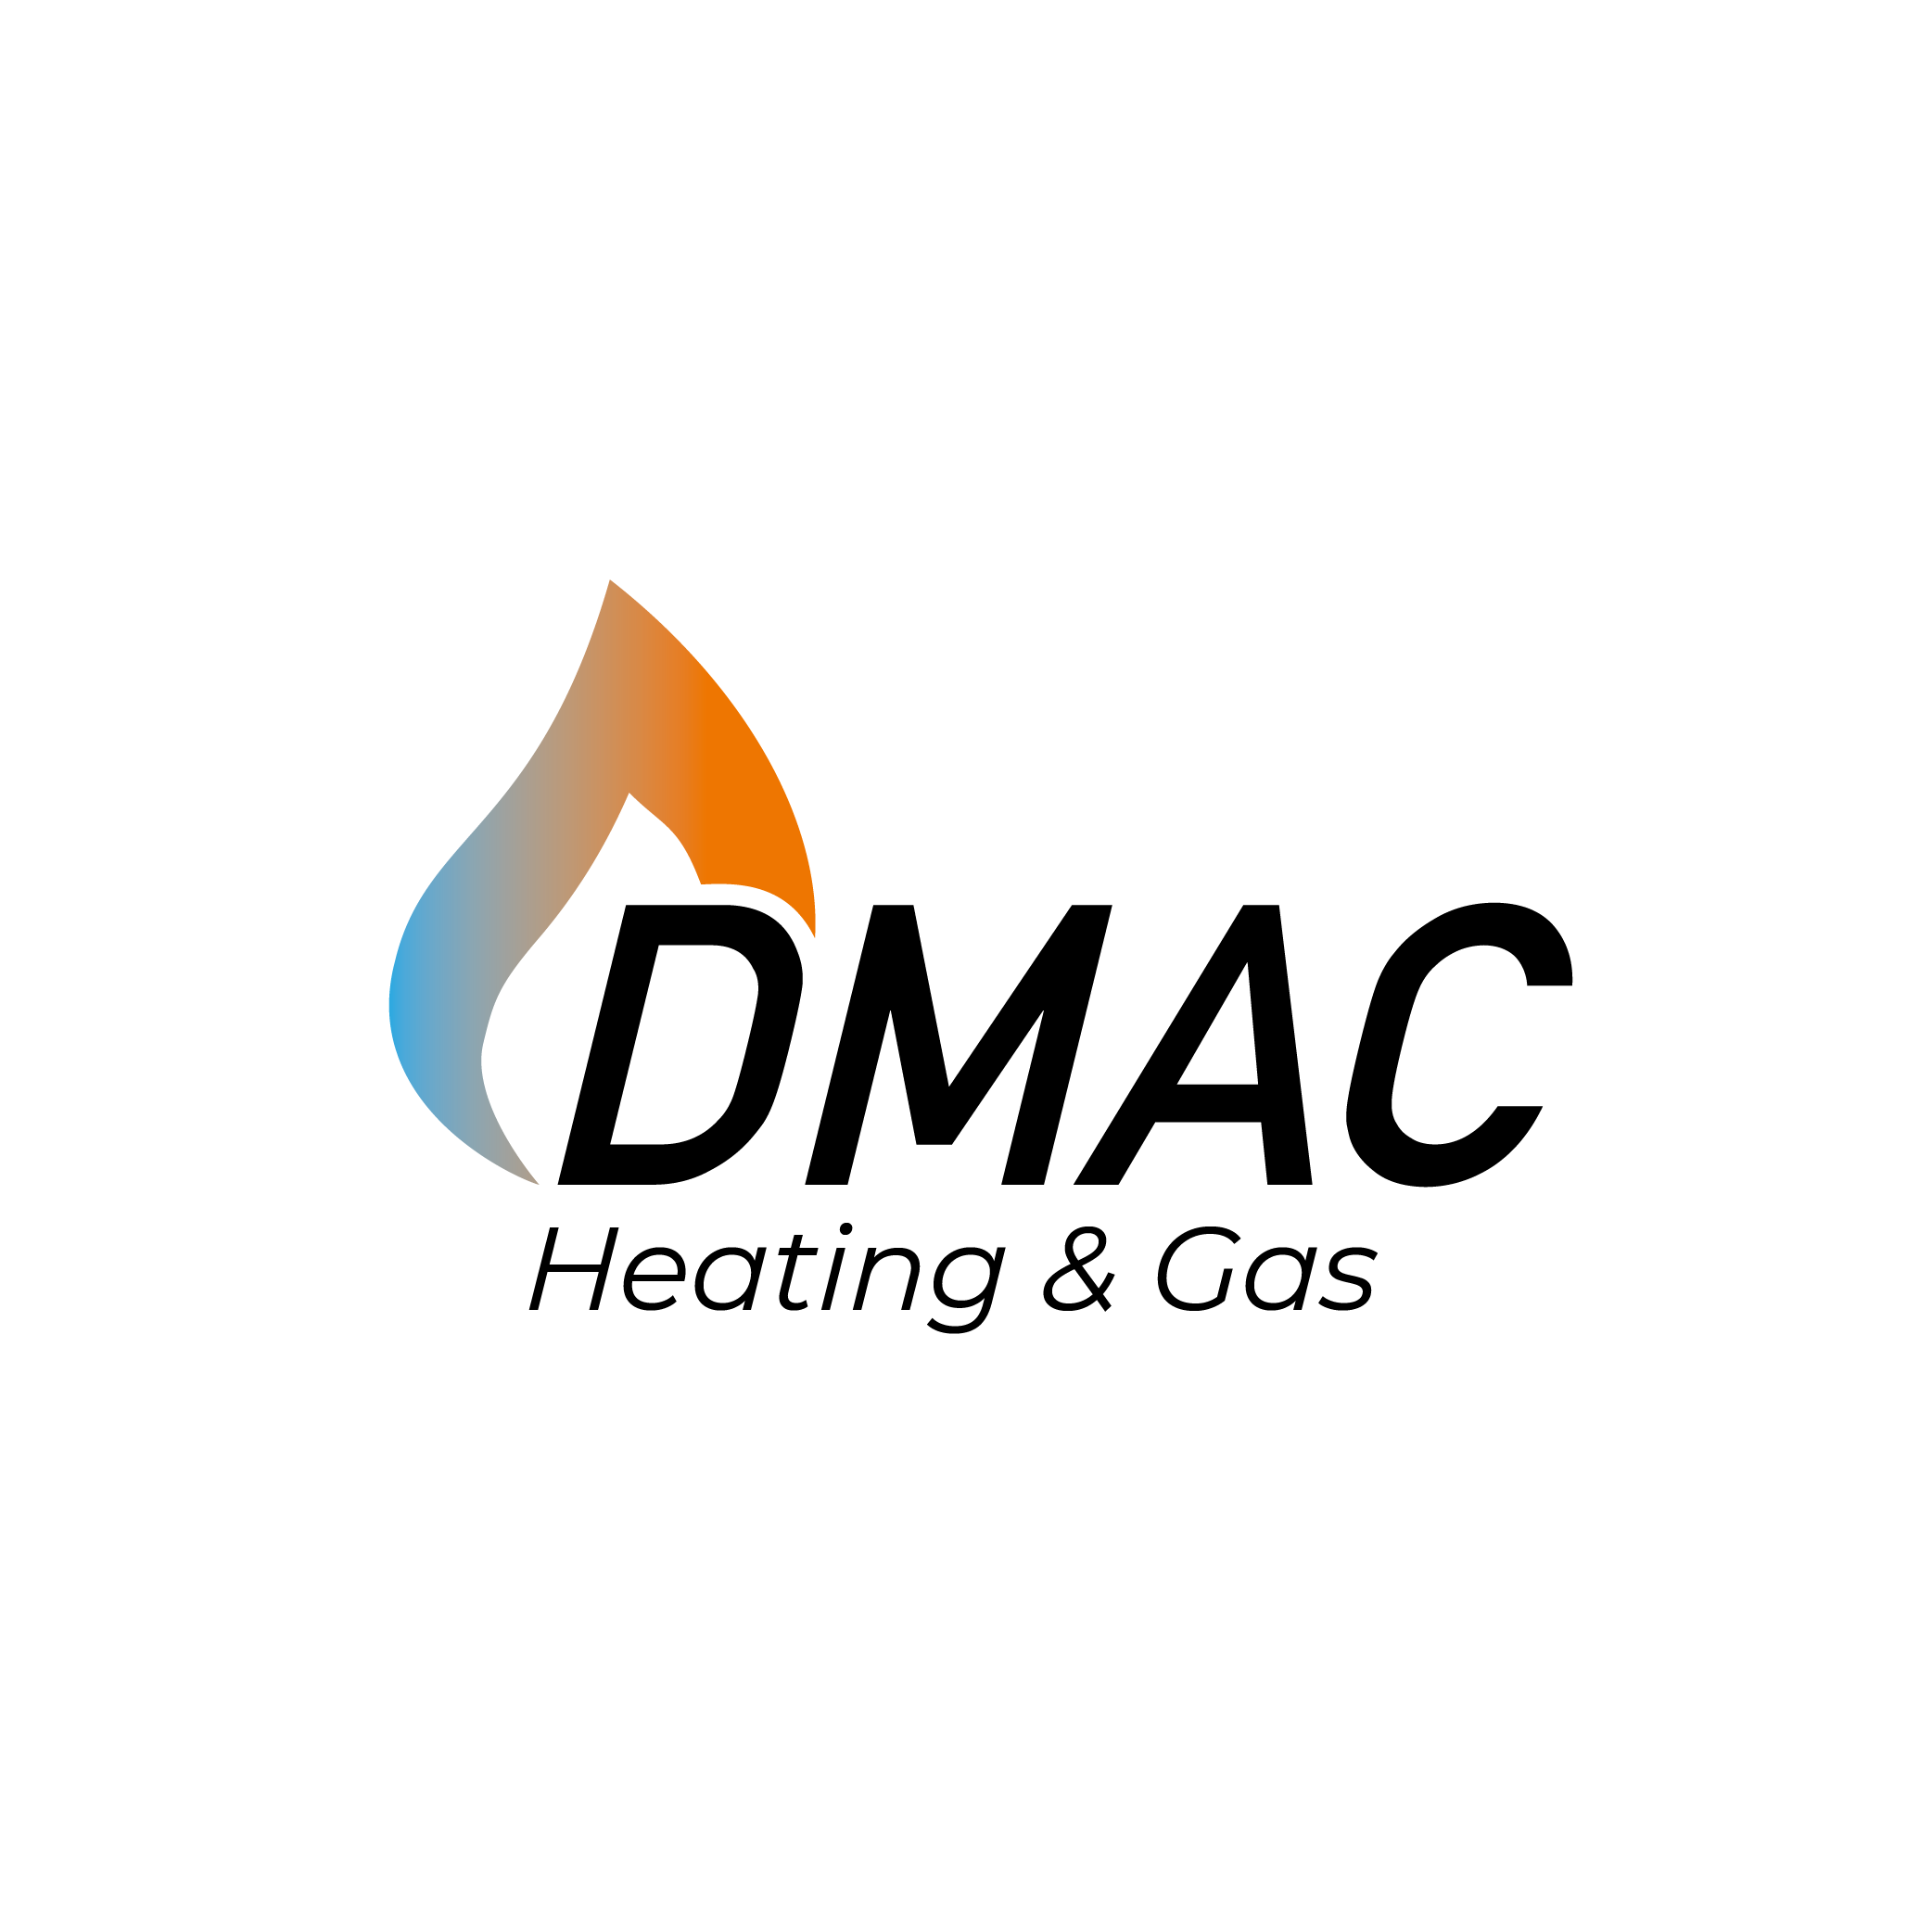 DMAC Heating & Gas main logo for Max Design Services